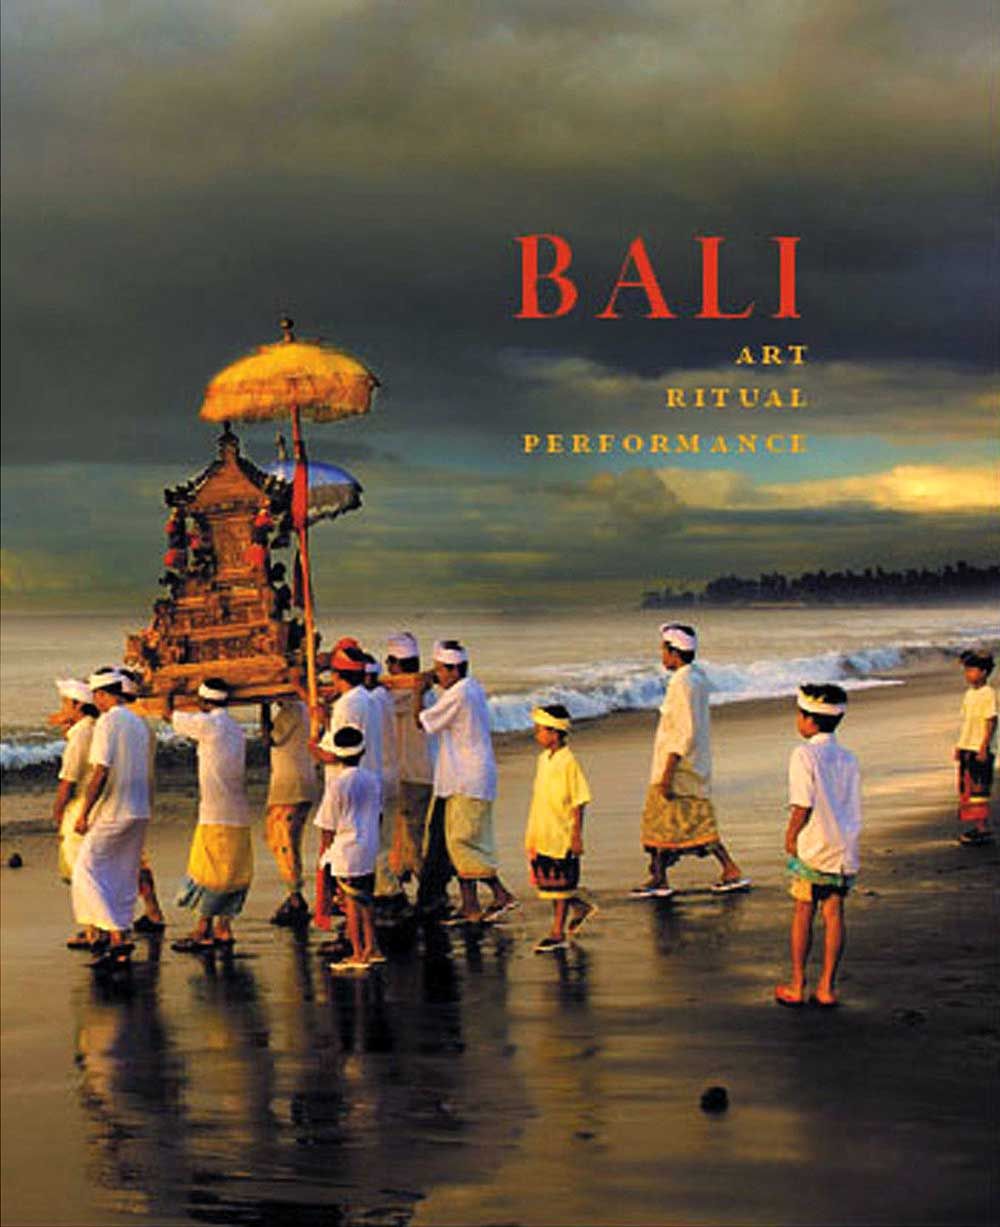 Bali: Art, Ritual, Performance, by Natasha Reichle, 10 x 12 in. Aspect ratio: 1:1.2, a shape that is close to the half octagon. Many museum catalogues are 9 x 12 in., so this is larger and squarer.